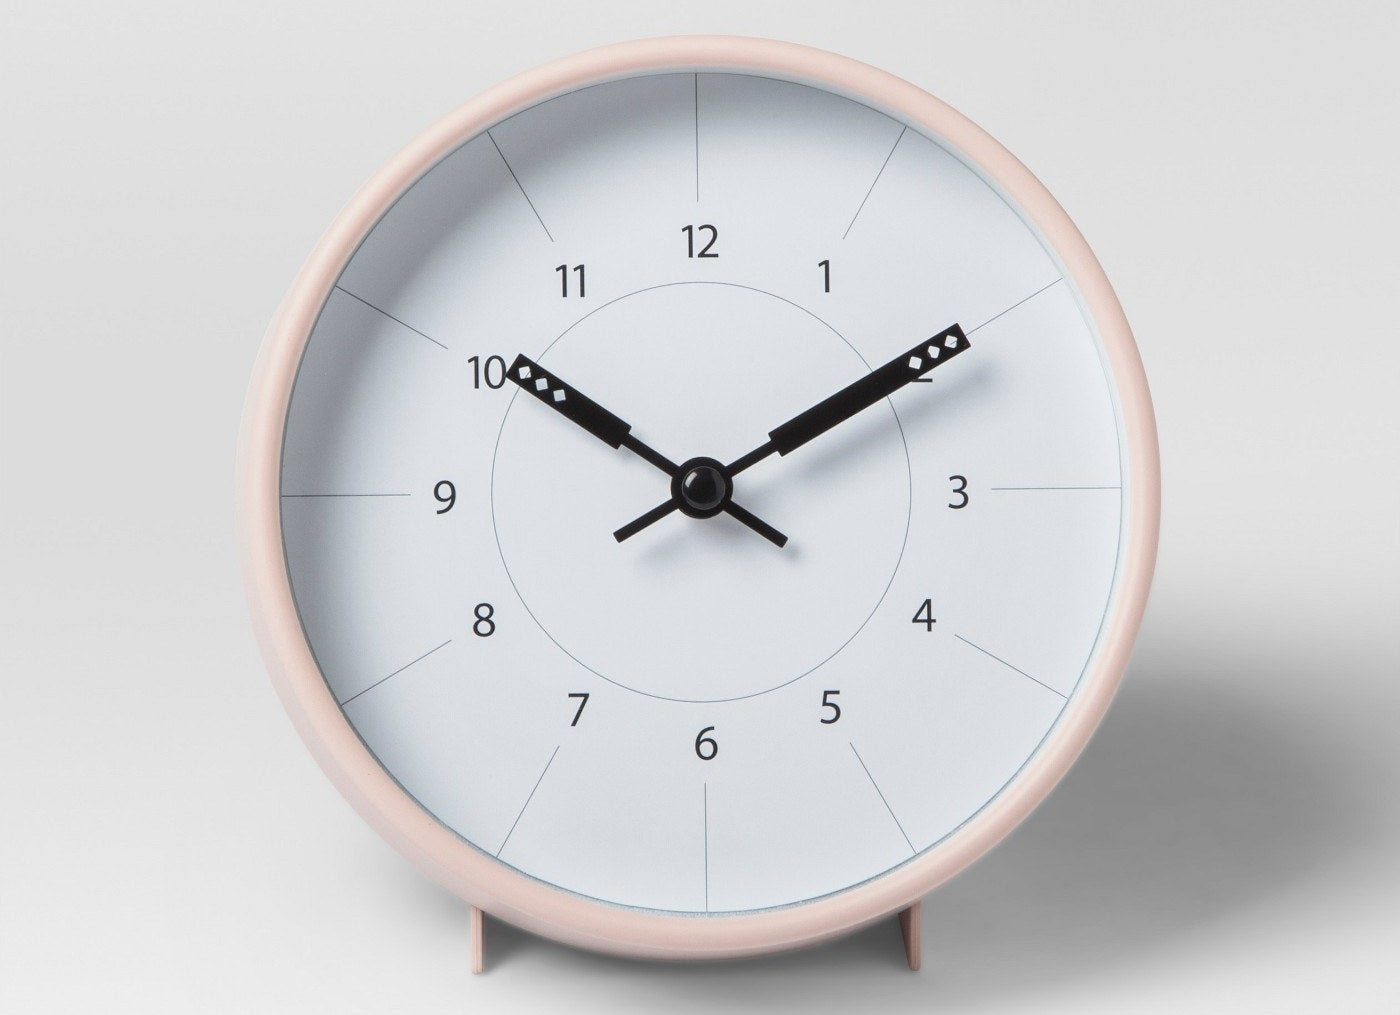 """Promising review: """"I needed a clock for my bathroom and this one is perfect. It's easy to see; it's very quiet; it's a great color, blush; it keeps perfect time; it can either stand on the counter or hang on the wall; and it's a bargain at the price. I love it."""" —PAHGet it from Target for $9.99."""